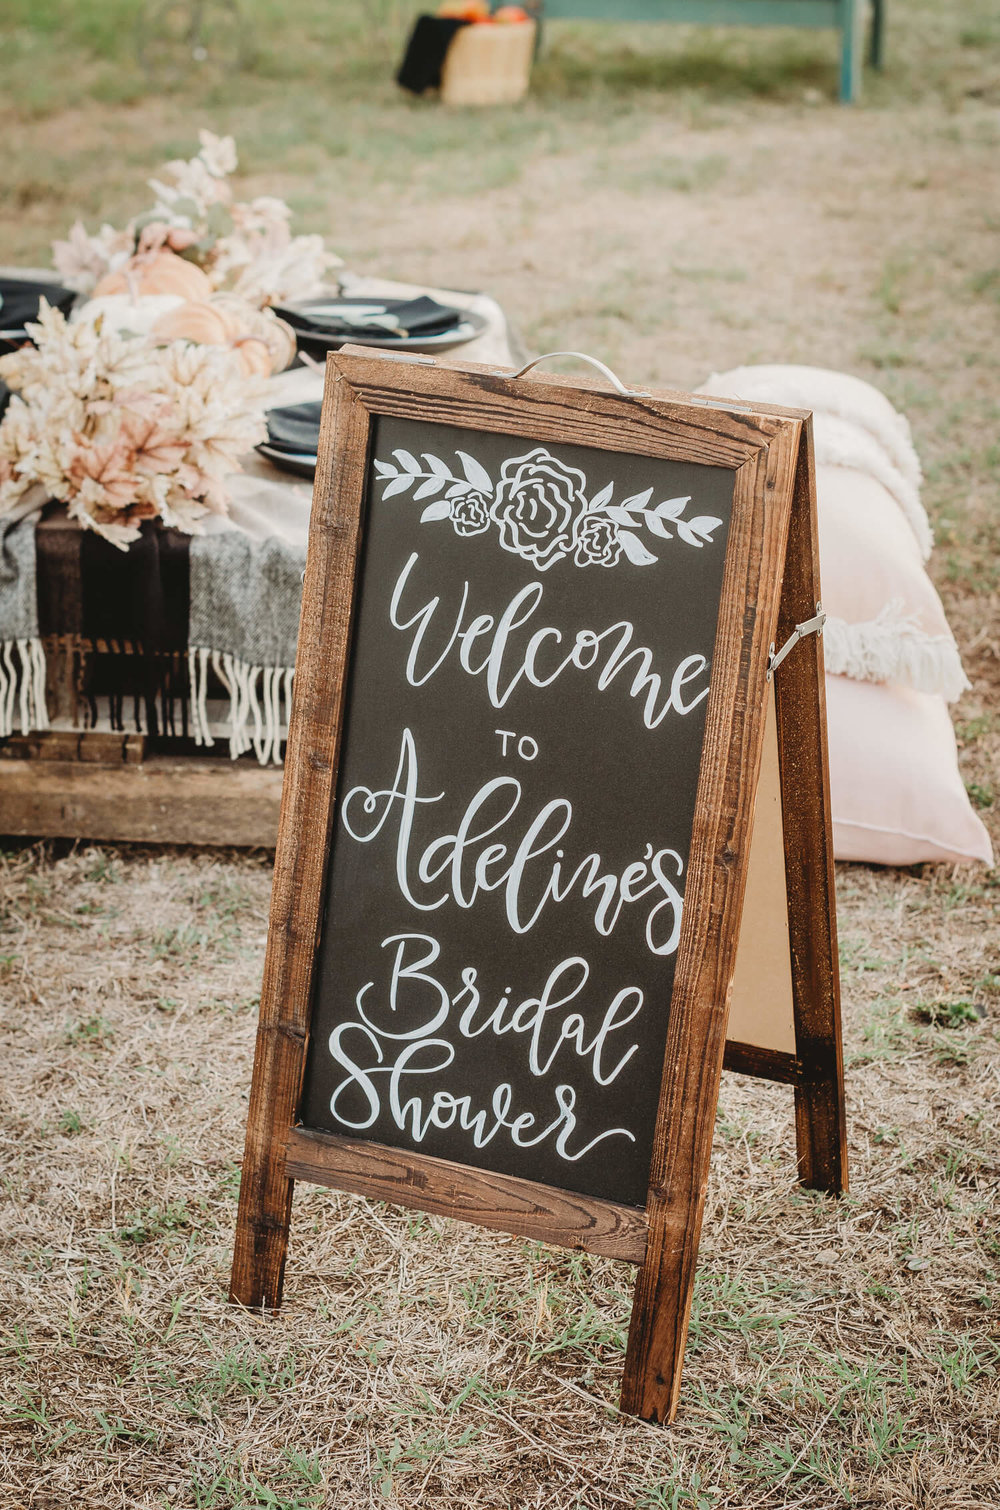 Greet wedding guests with a rustic wooden chalkboard sign welcoming them to your event. Click to see all the details of this fall bridal shower by party stylist Mint Event Design. #bridalshowers #bridalshowerideas #rusticwedding #rusticbridalshower #bridalshowerdecor #farmwedding #chalkboardsign